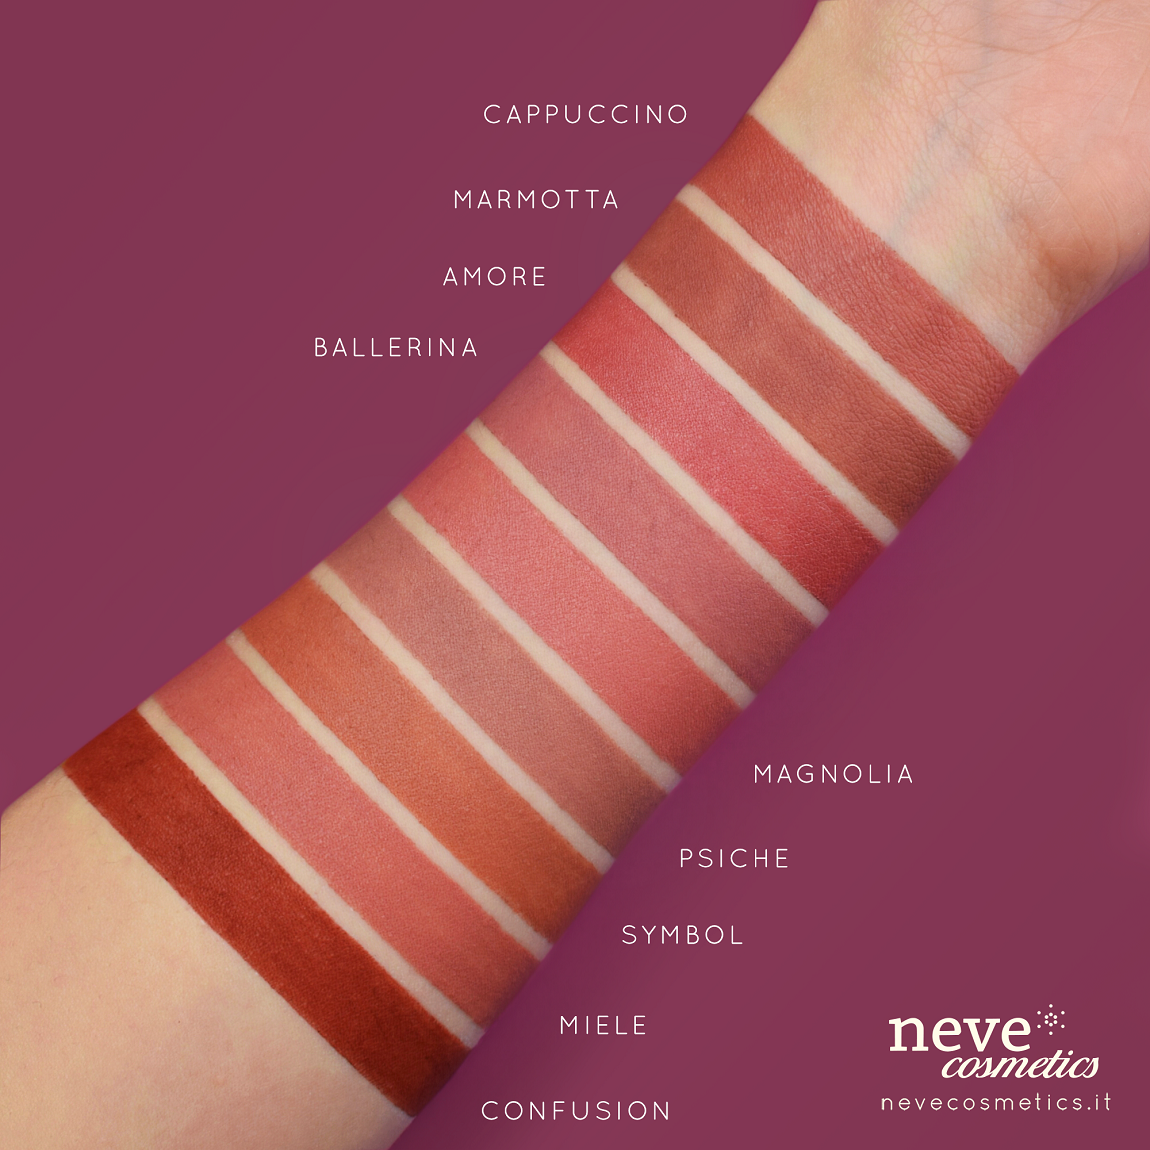 Swatch of pastel-colored flesh-colored lips Cosmetics